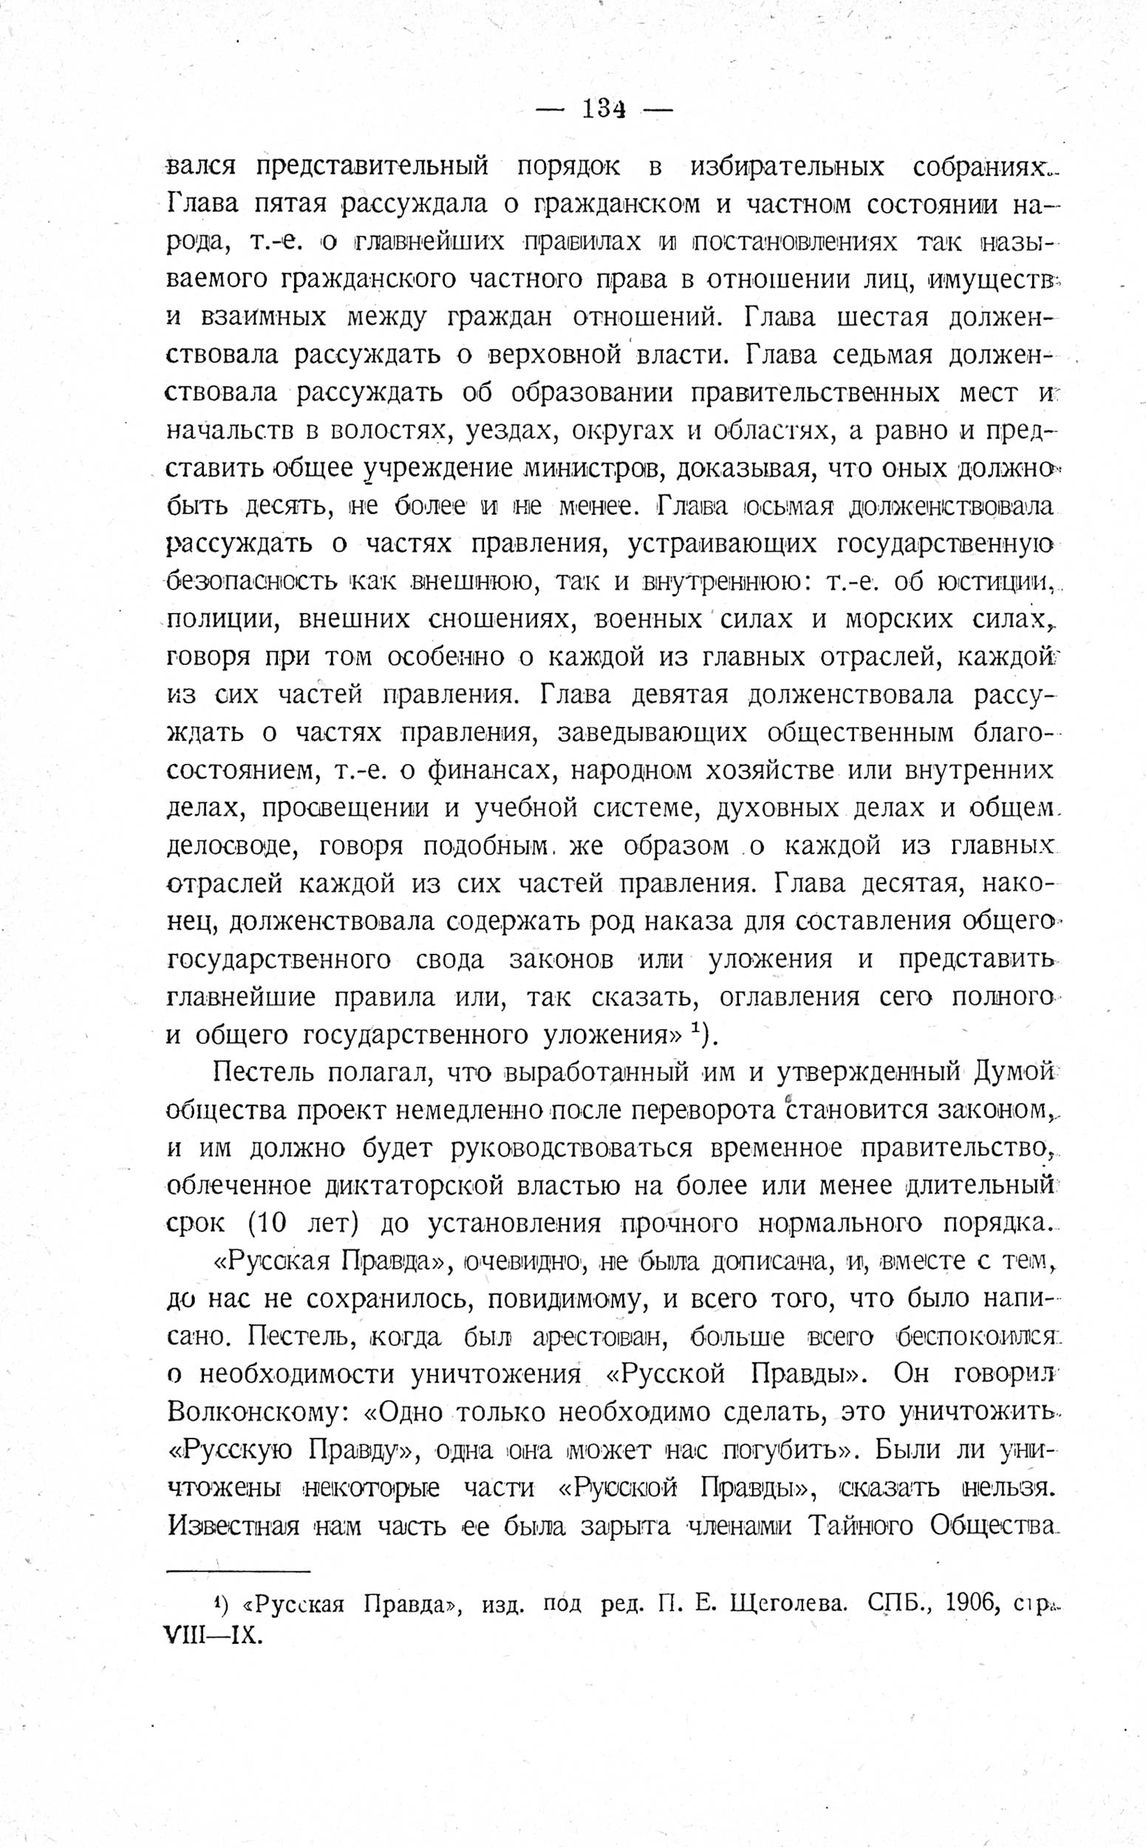 http://elib.shpl.ru/pages/625717/zooms/7